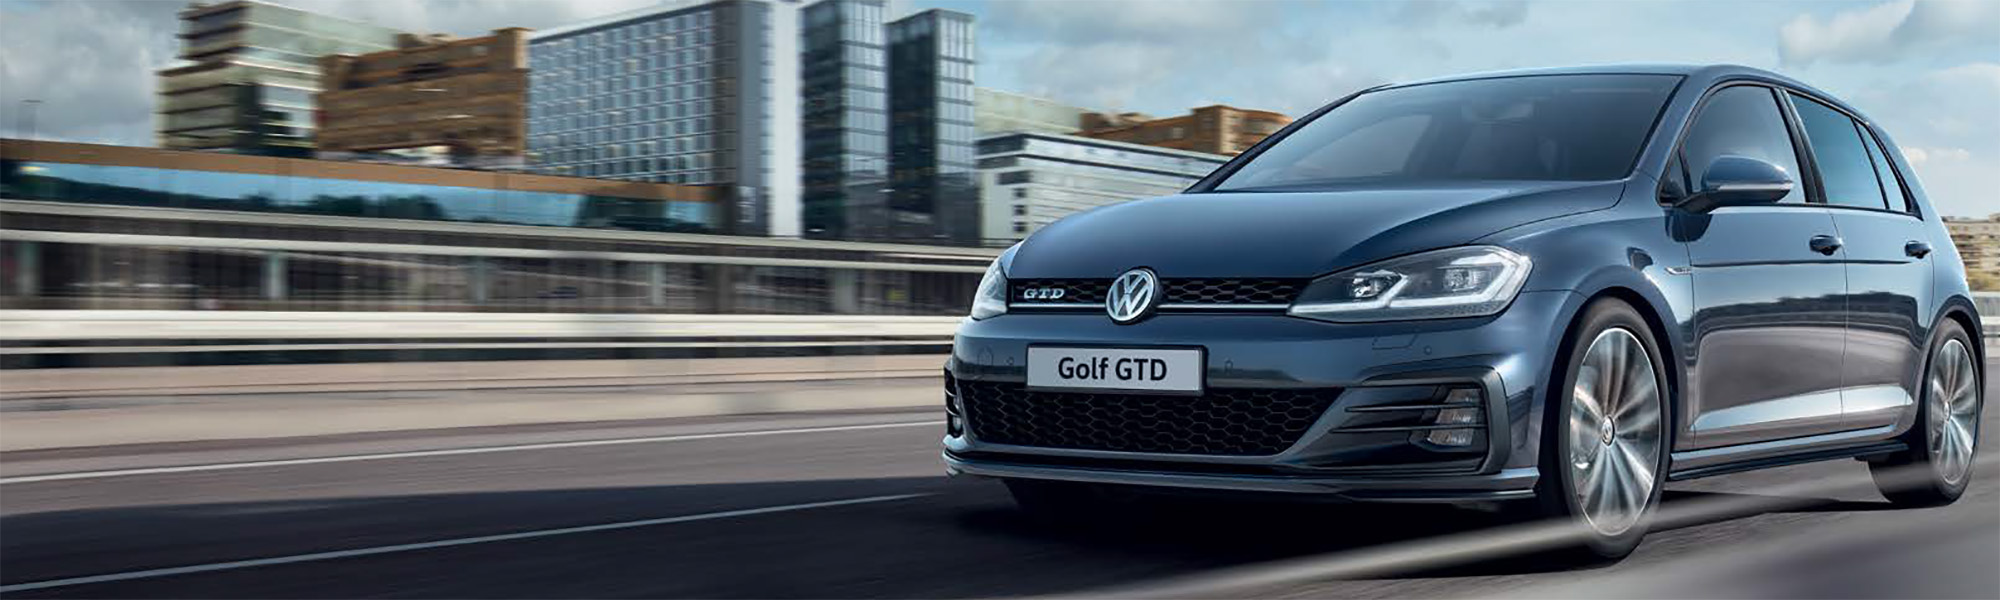 New Golf offers